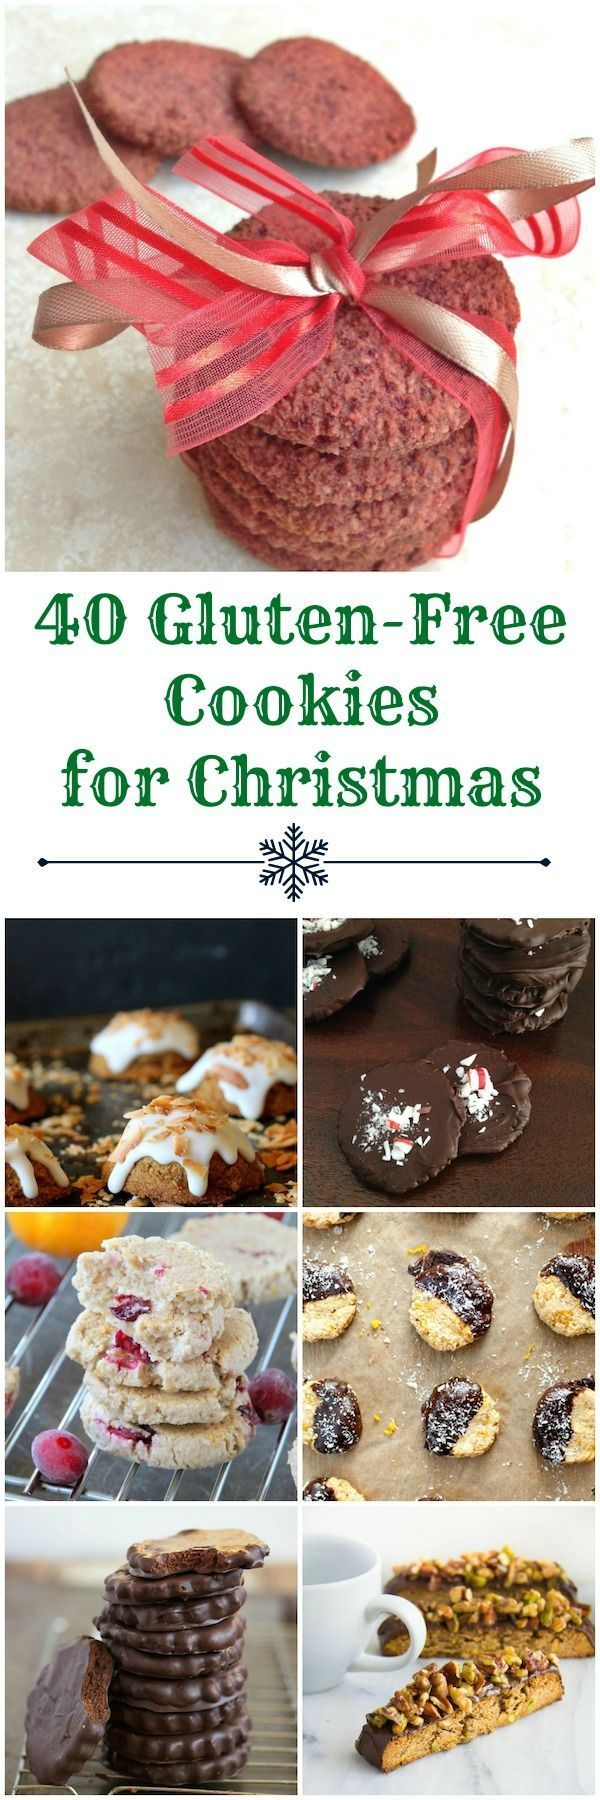 The Top 40 Gluten Free Christmas Cookie Recipes chosen by the registered dietitians of @Healthy Aperture